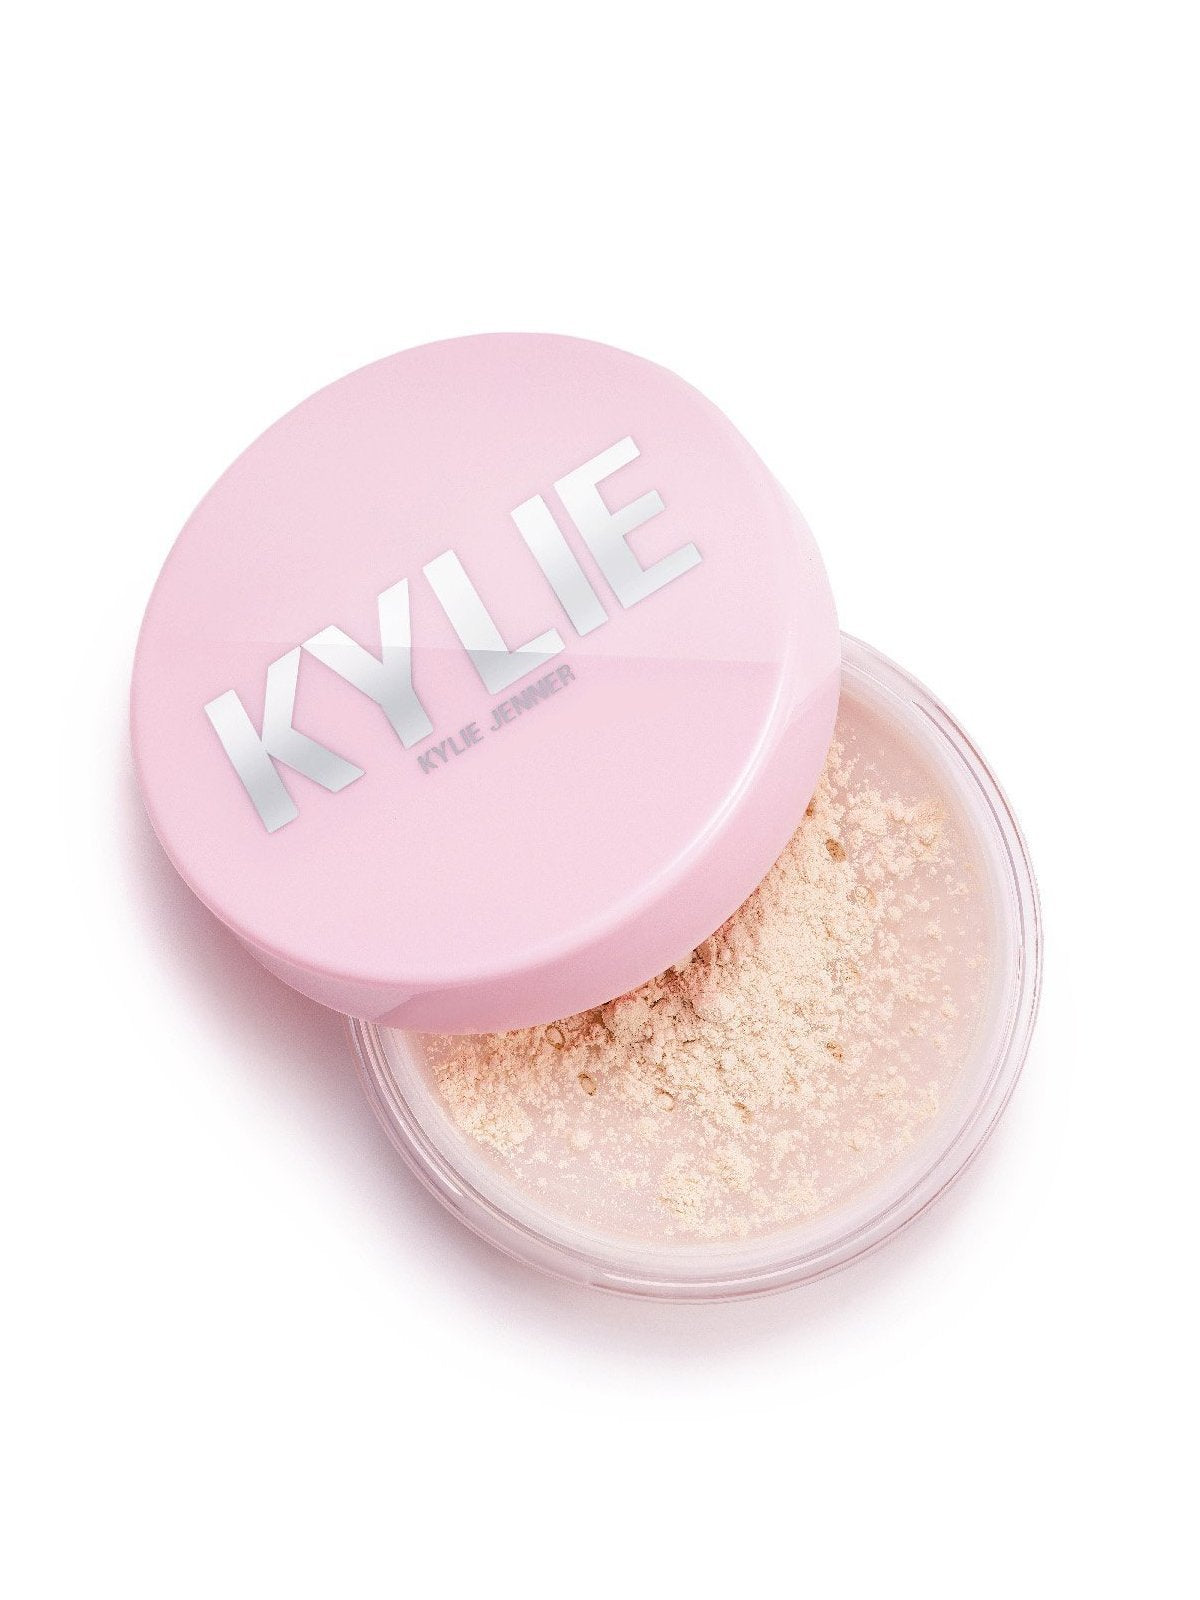 Kylie's Soft Glam Bundle by Kylie Cosmetics #5